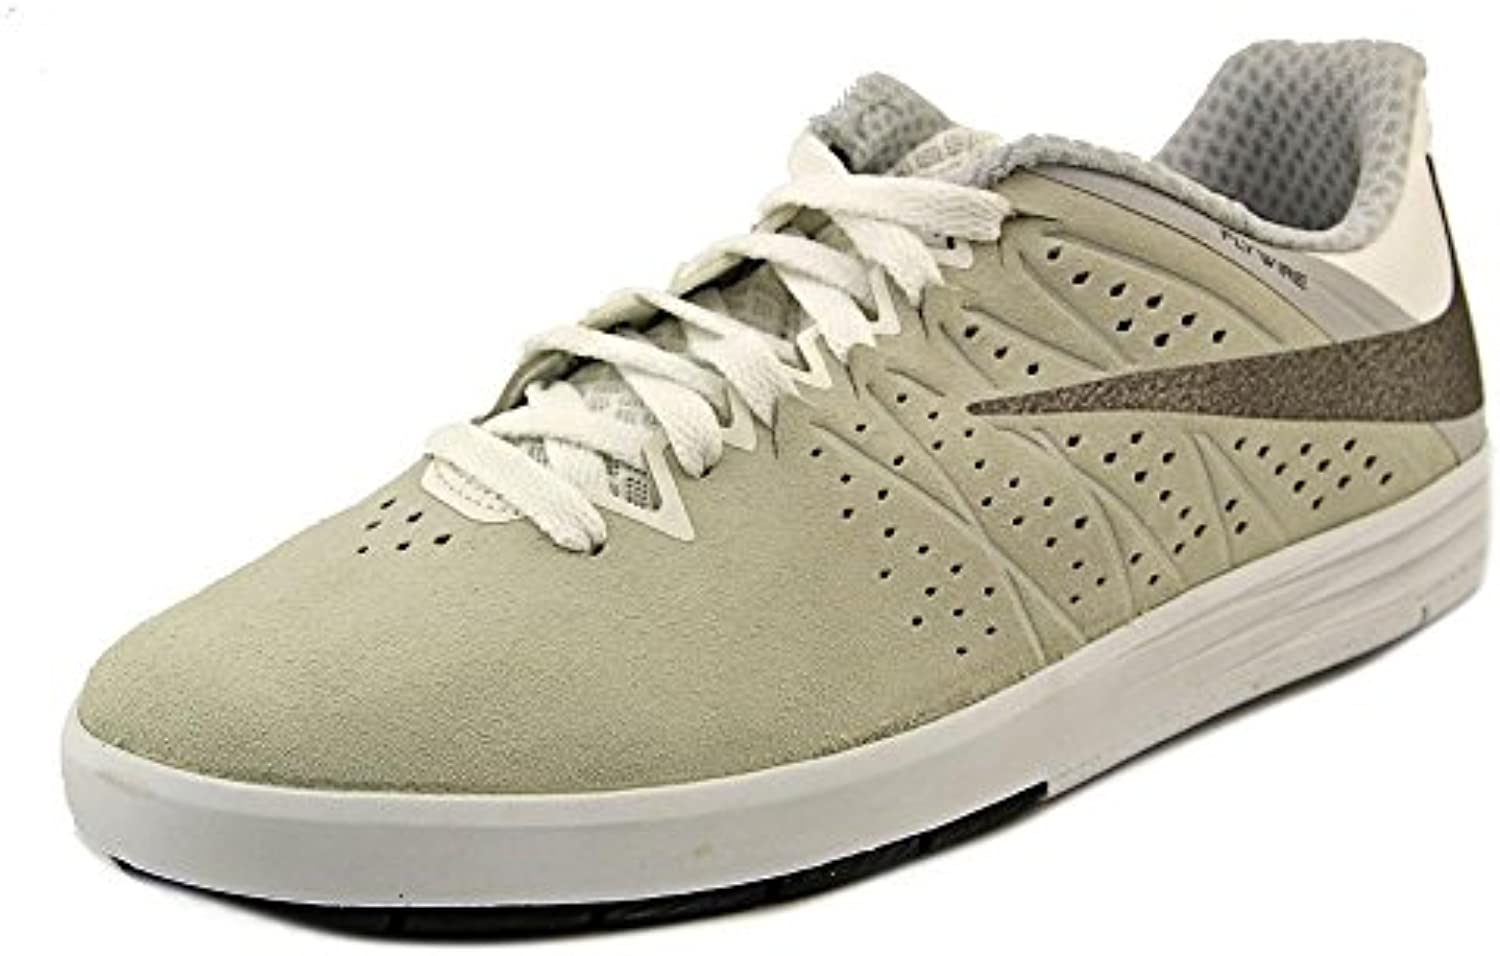 nike formateurs paul rodriguez ctd sb   formateurs nike 654863 chaussures chaussures 2be142